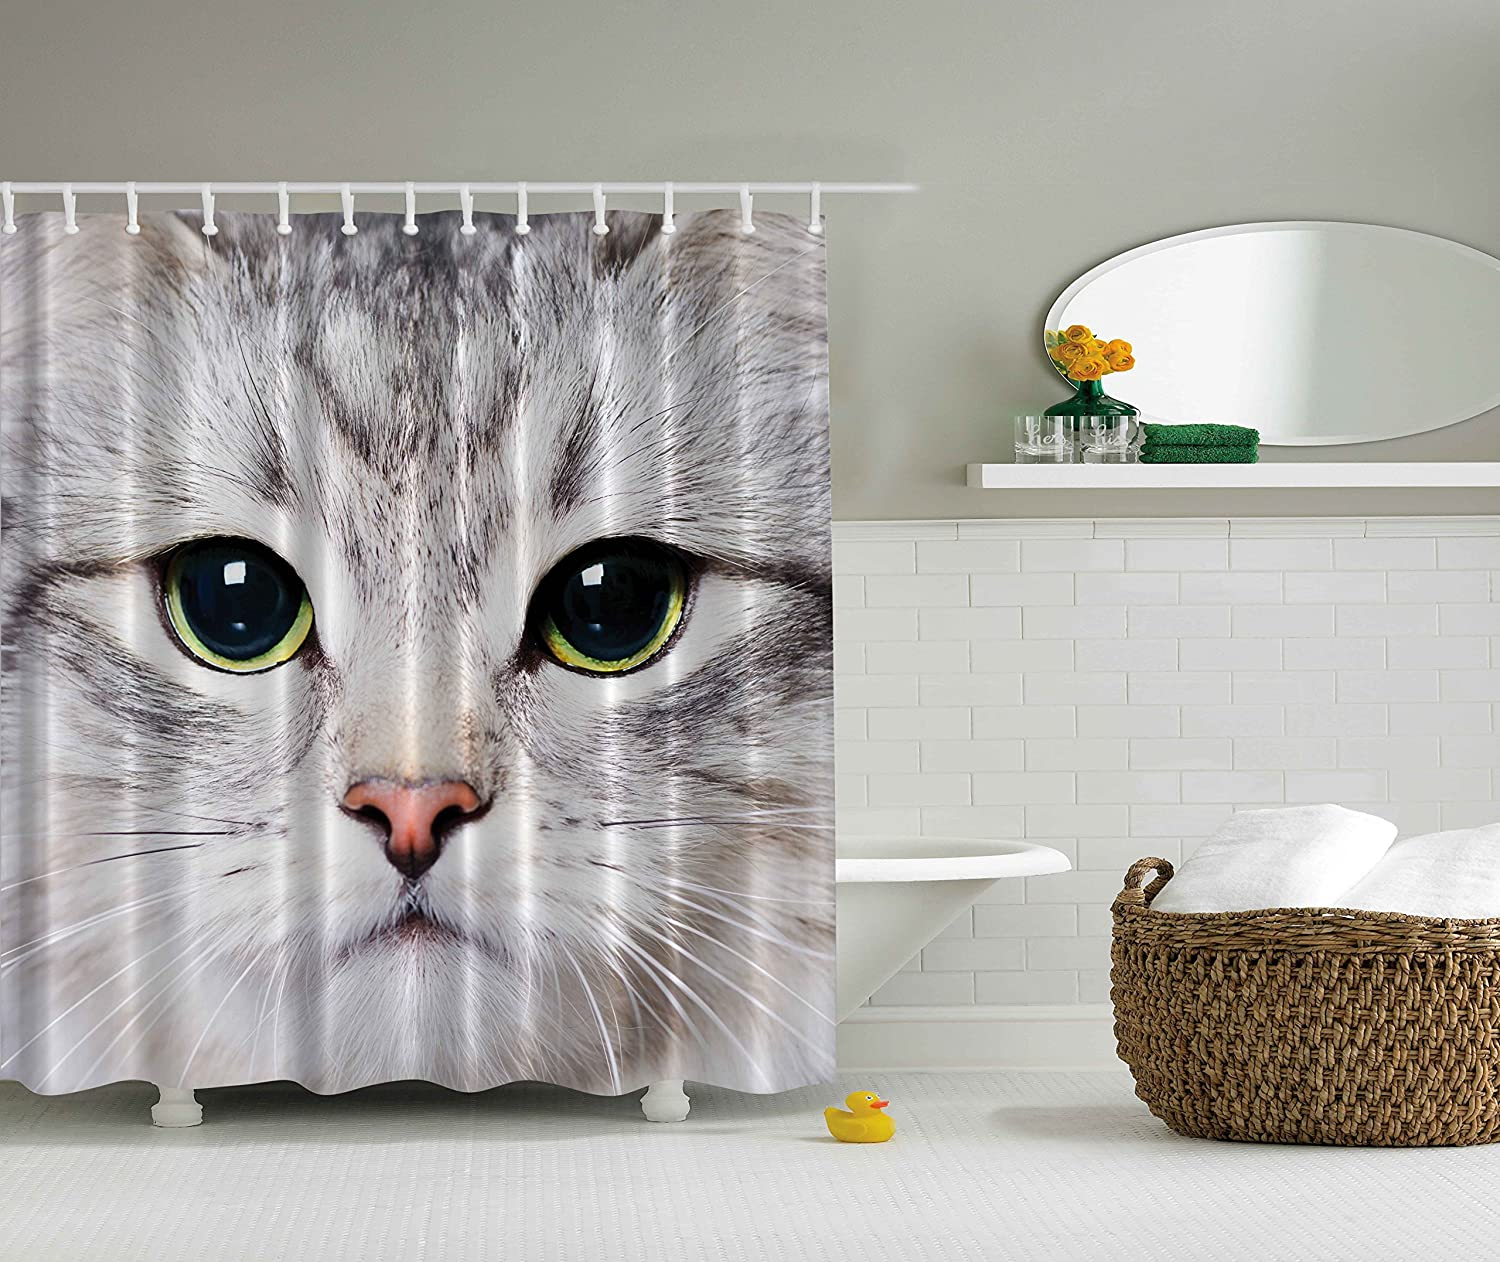 Kraken shower curtain - Amazon Com Cat Shower Curtain By Ambesonne Decorations Gray Cute Cat Print Kitten Kitty Closeup Portrait Picture Digital Photography Lovely Pet Bathroom